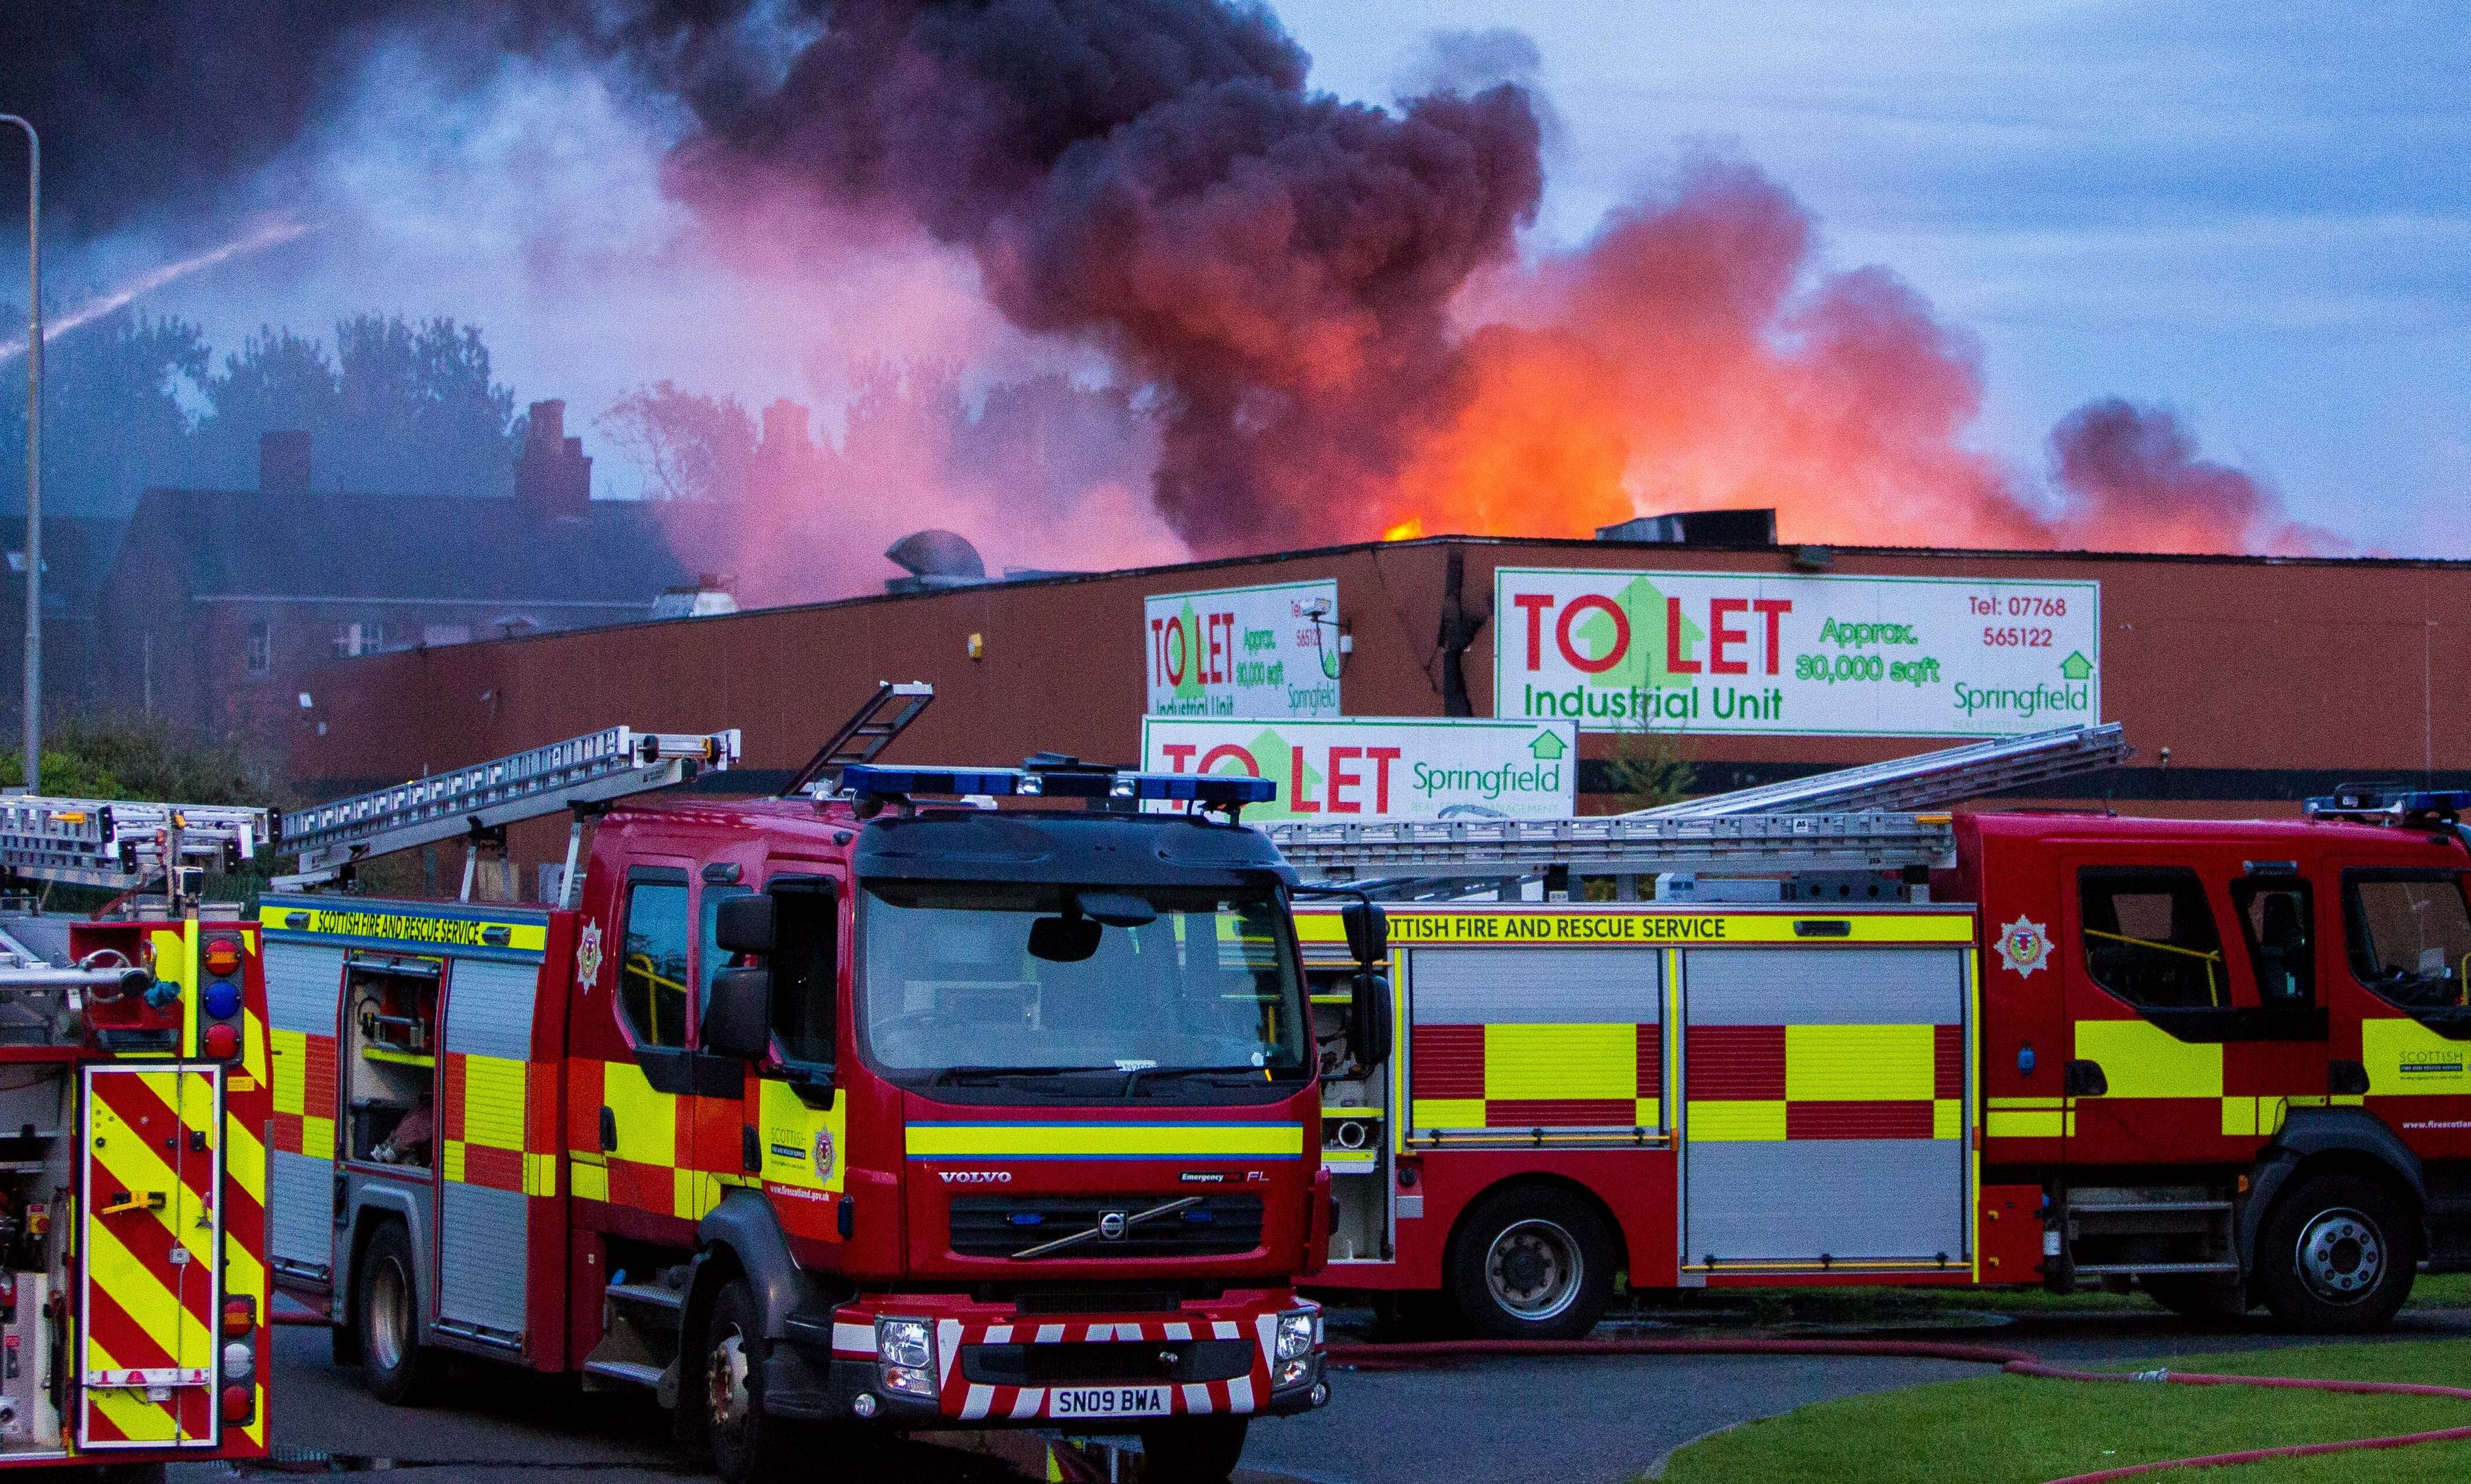 Flames shot out of the roof at the height of the blaze